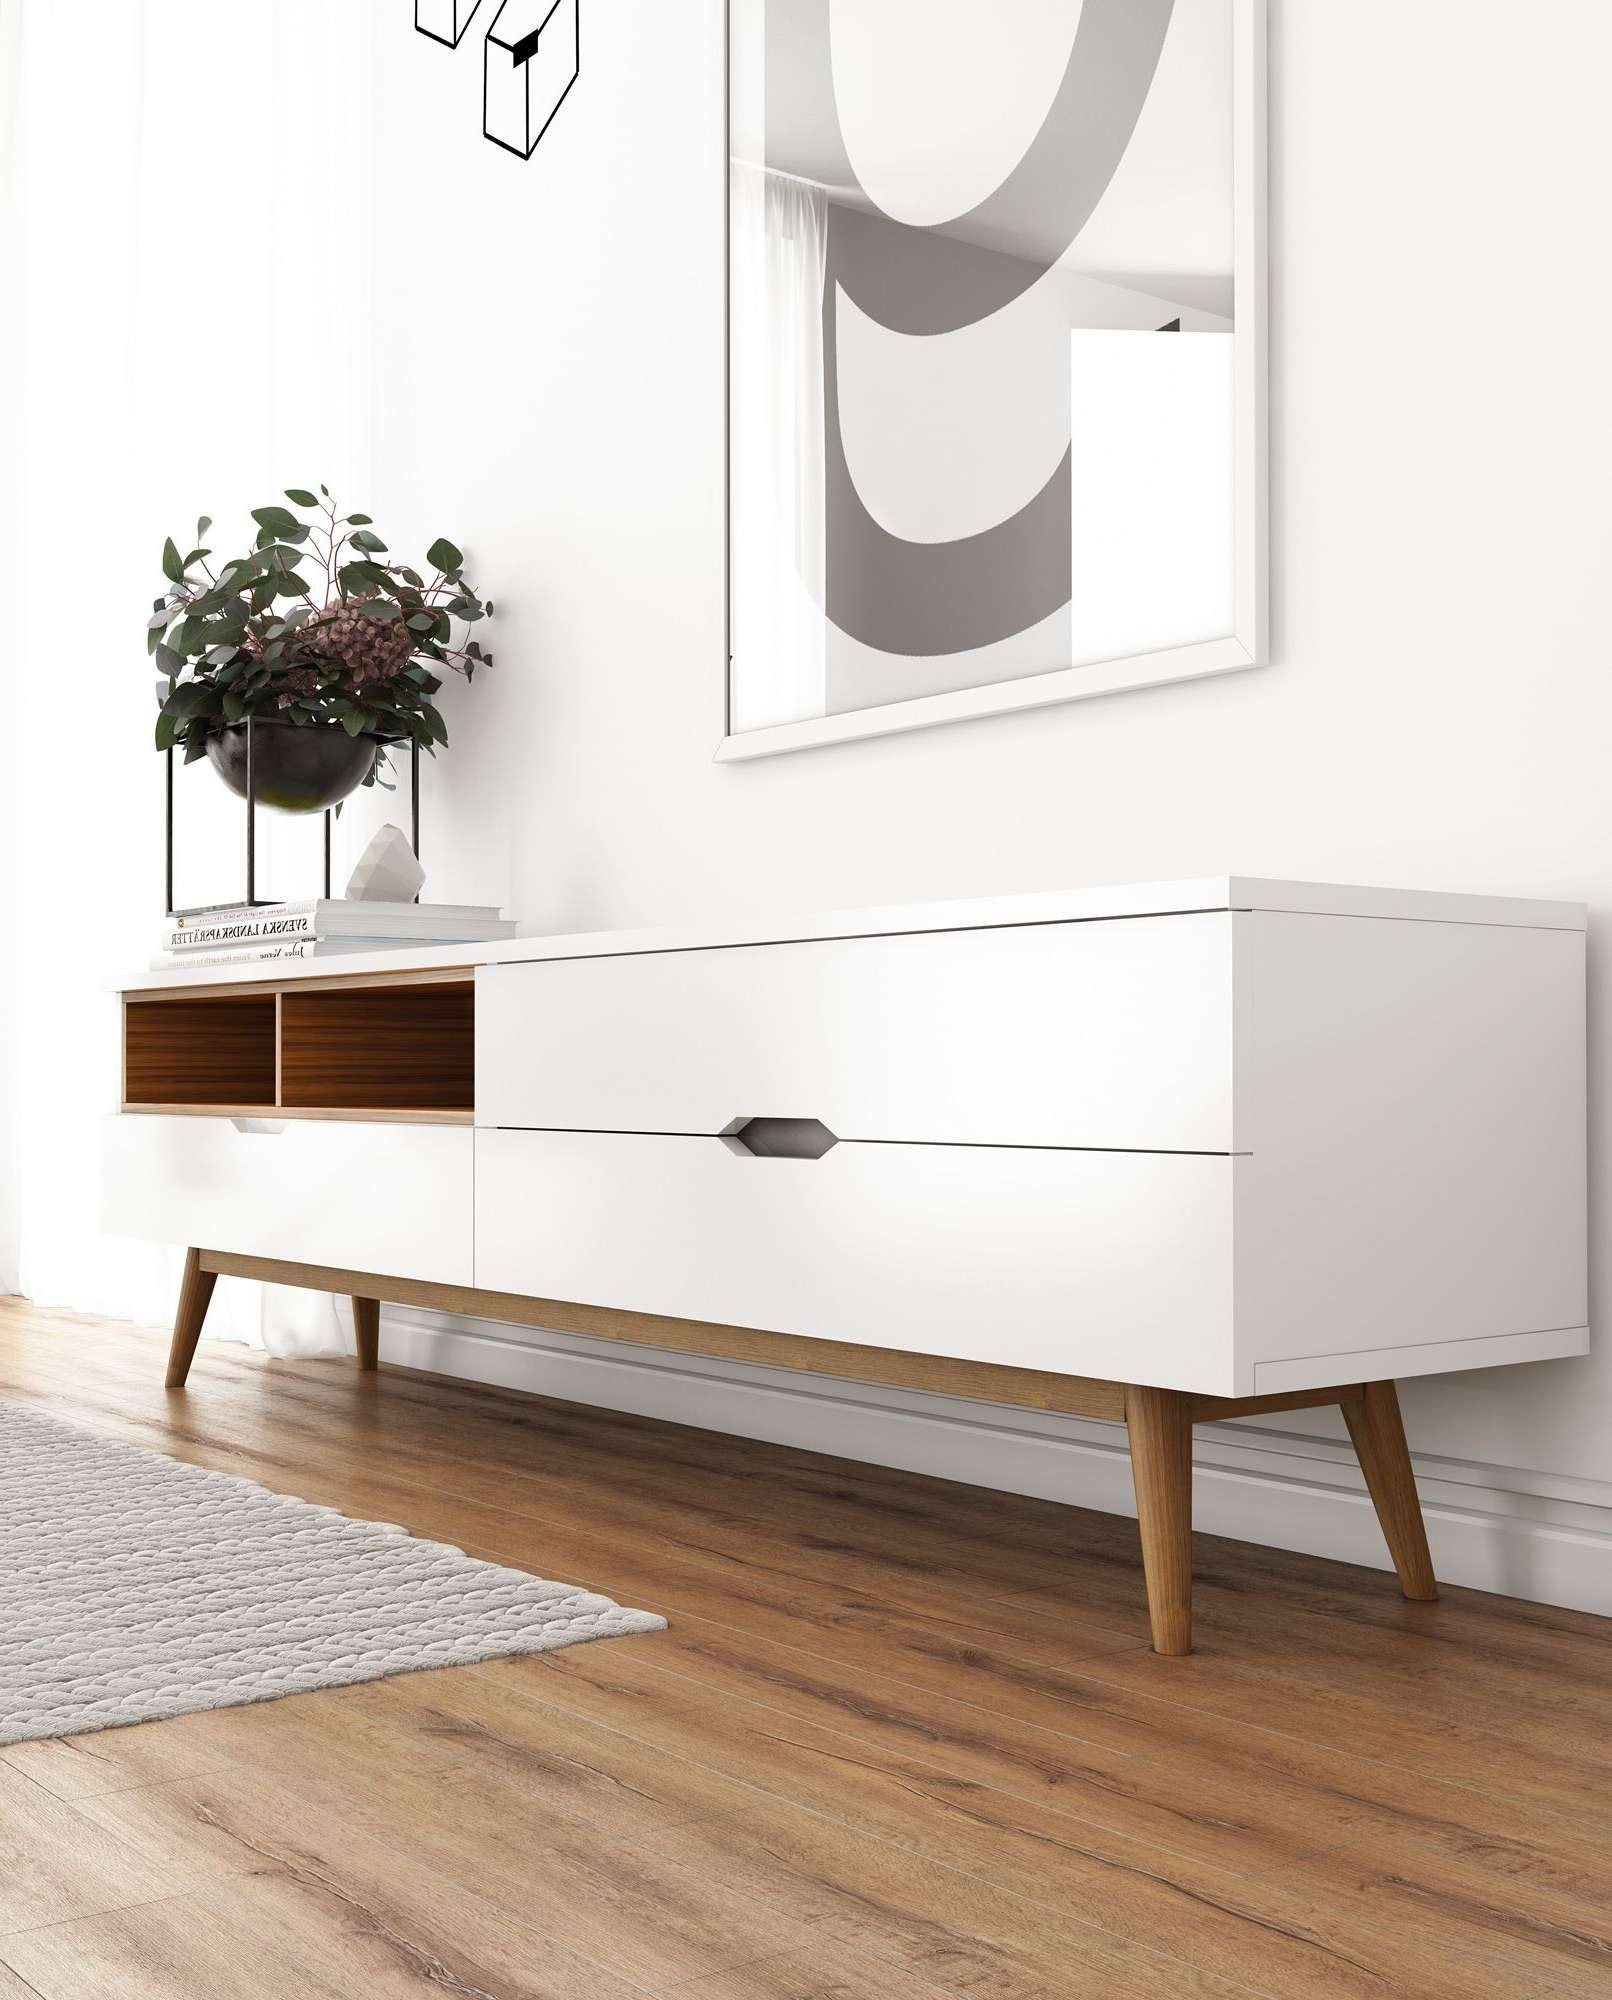 Tv : Scandinavian Design Tv Cabinets Endearing Scandinavian Design Intended For Scandinavian Design Tv Cabinets (View 3 of 20)